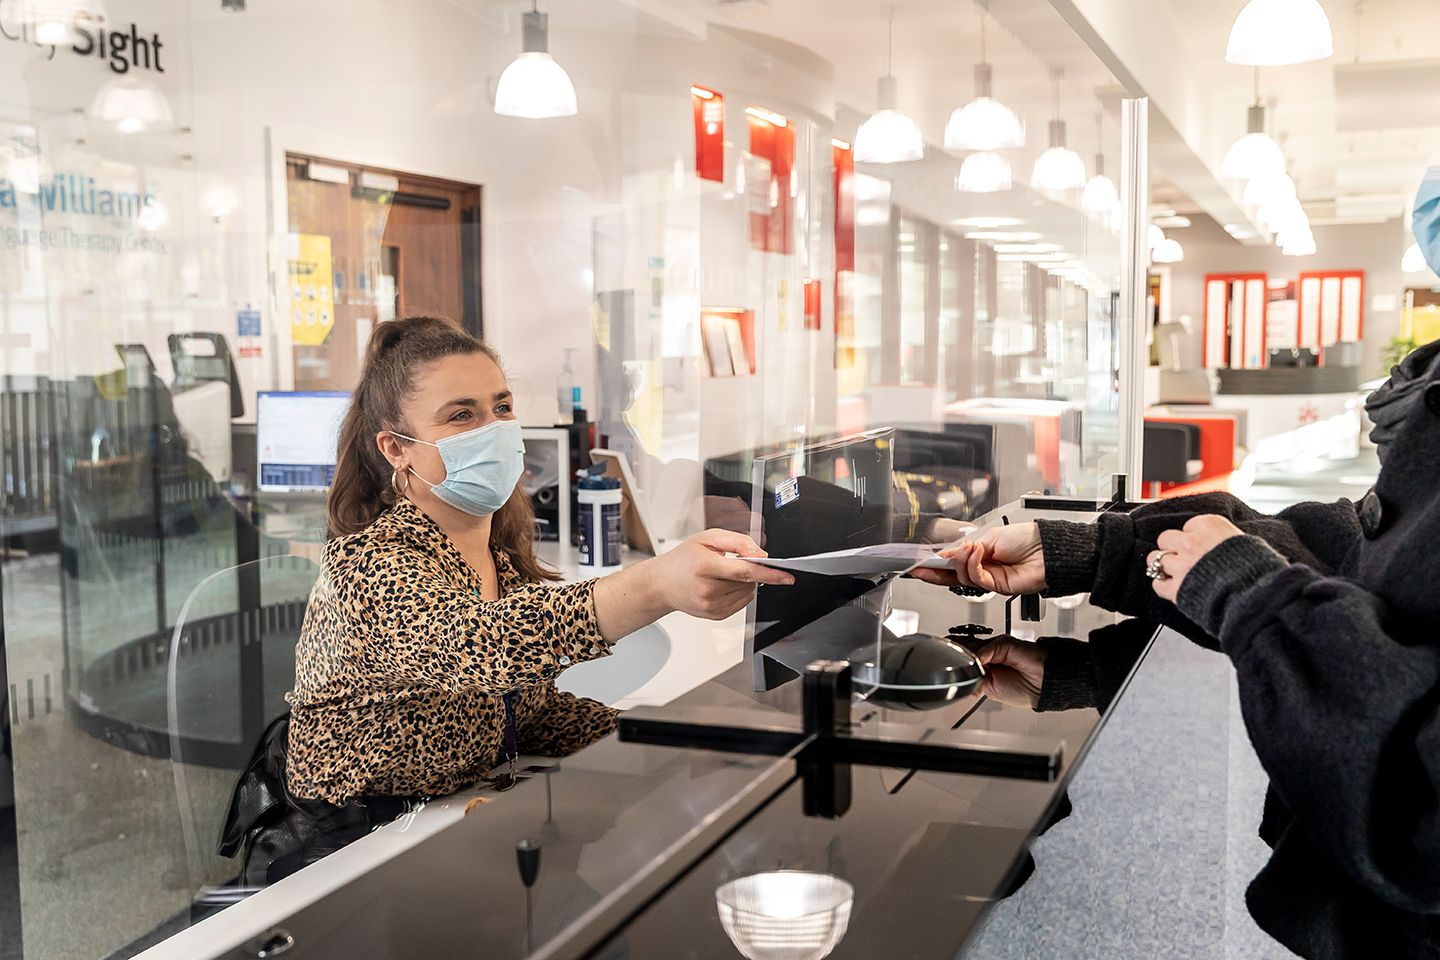 City Sight receptionist wearing a mask